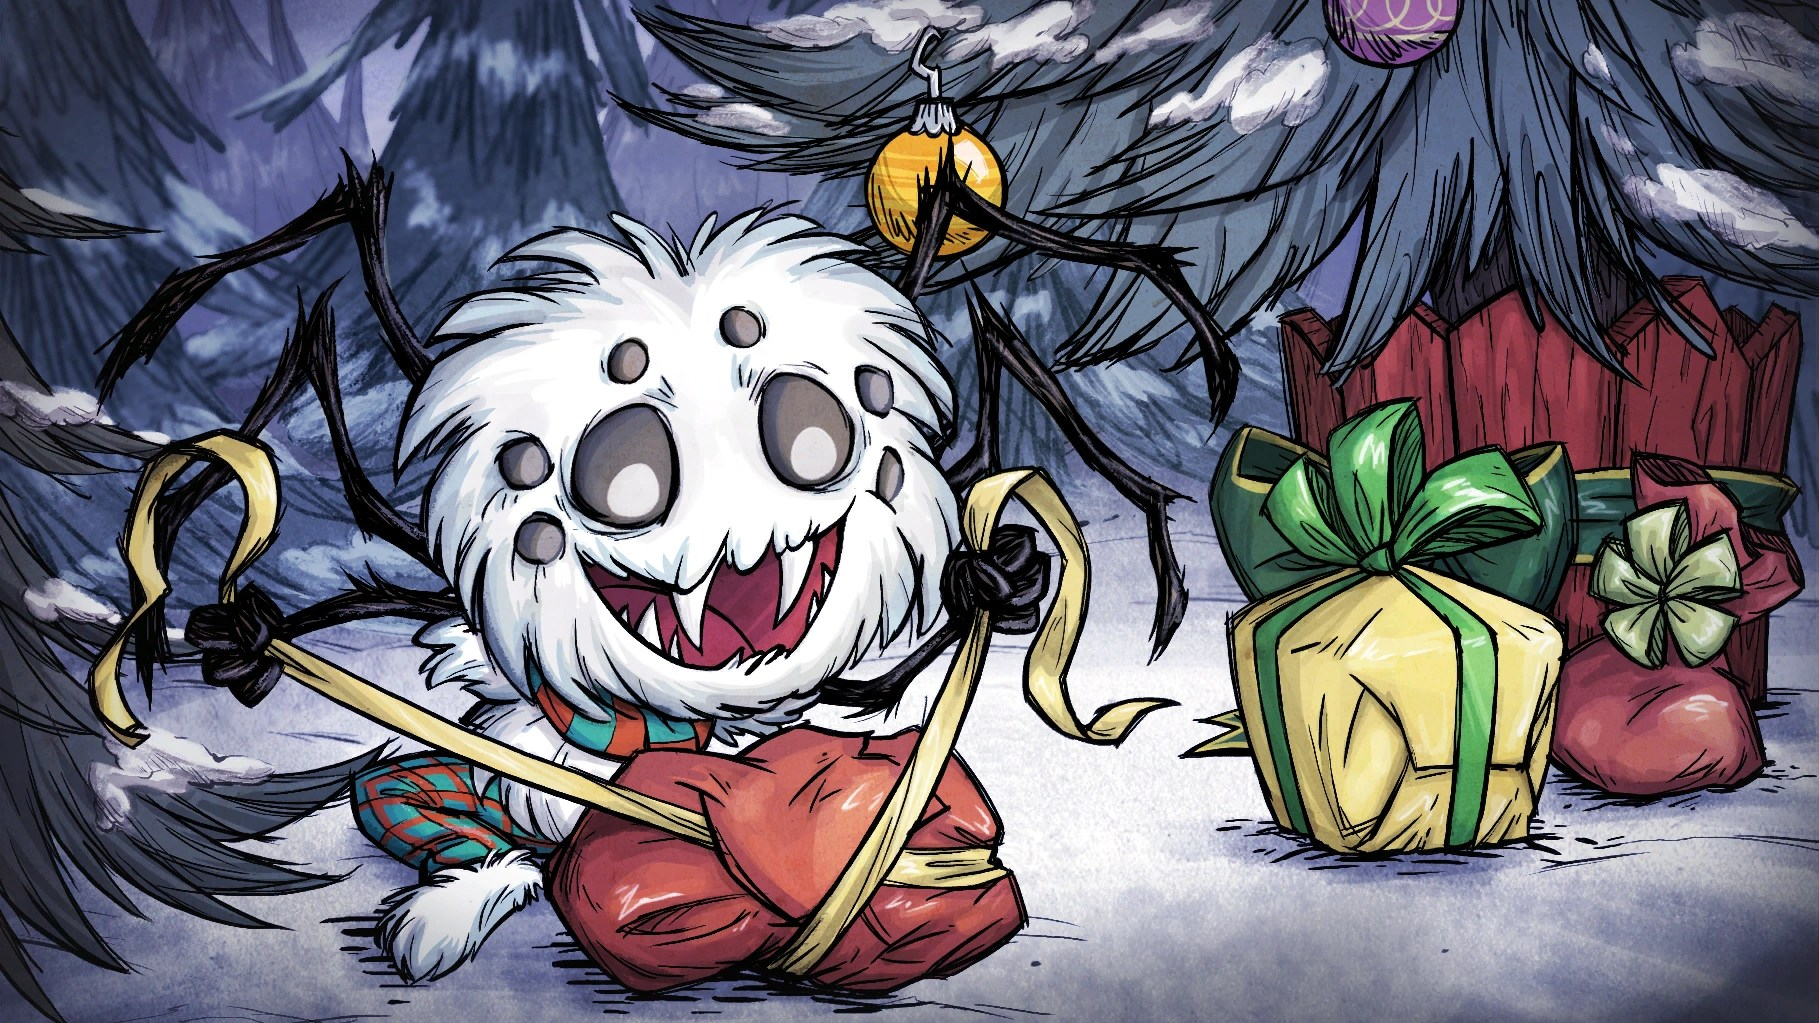 Category:Browse | Don't Starve game Wiki | FANDOM powered by Wikia